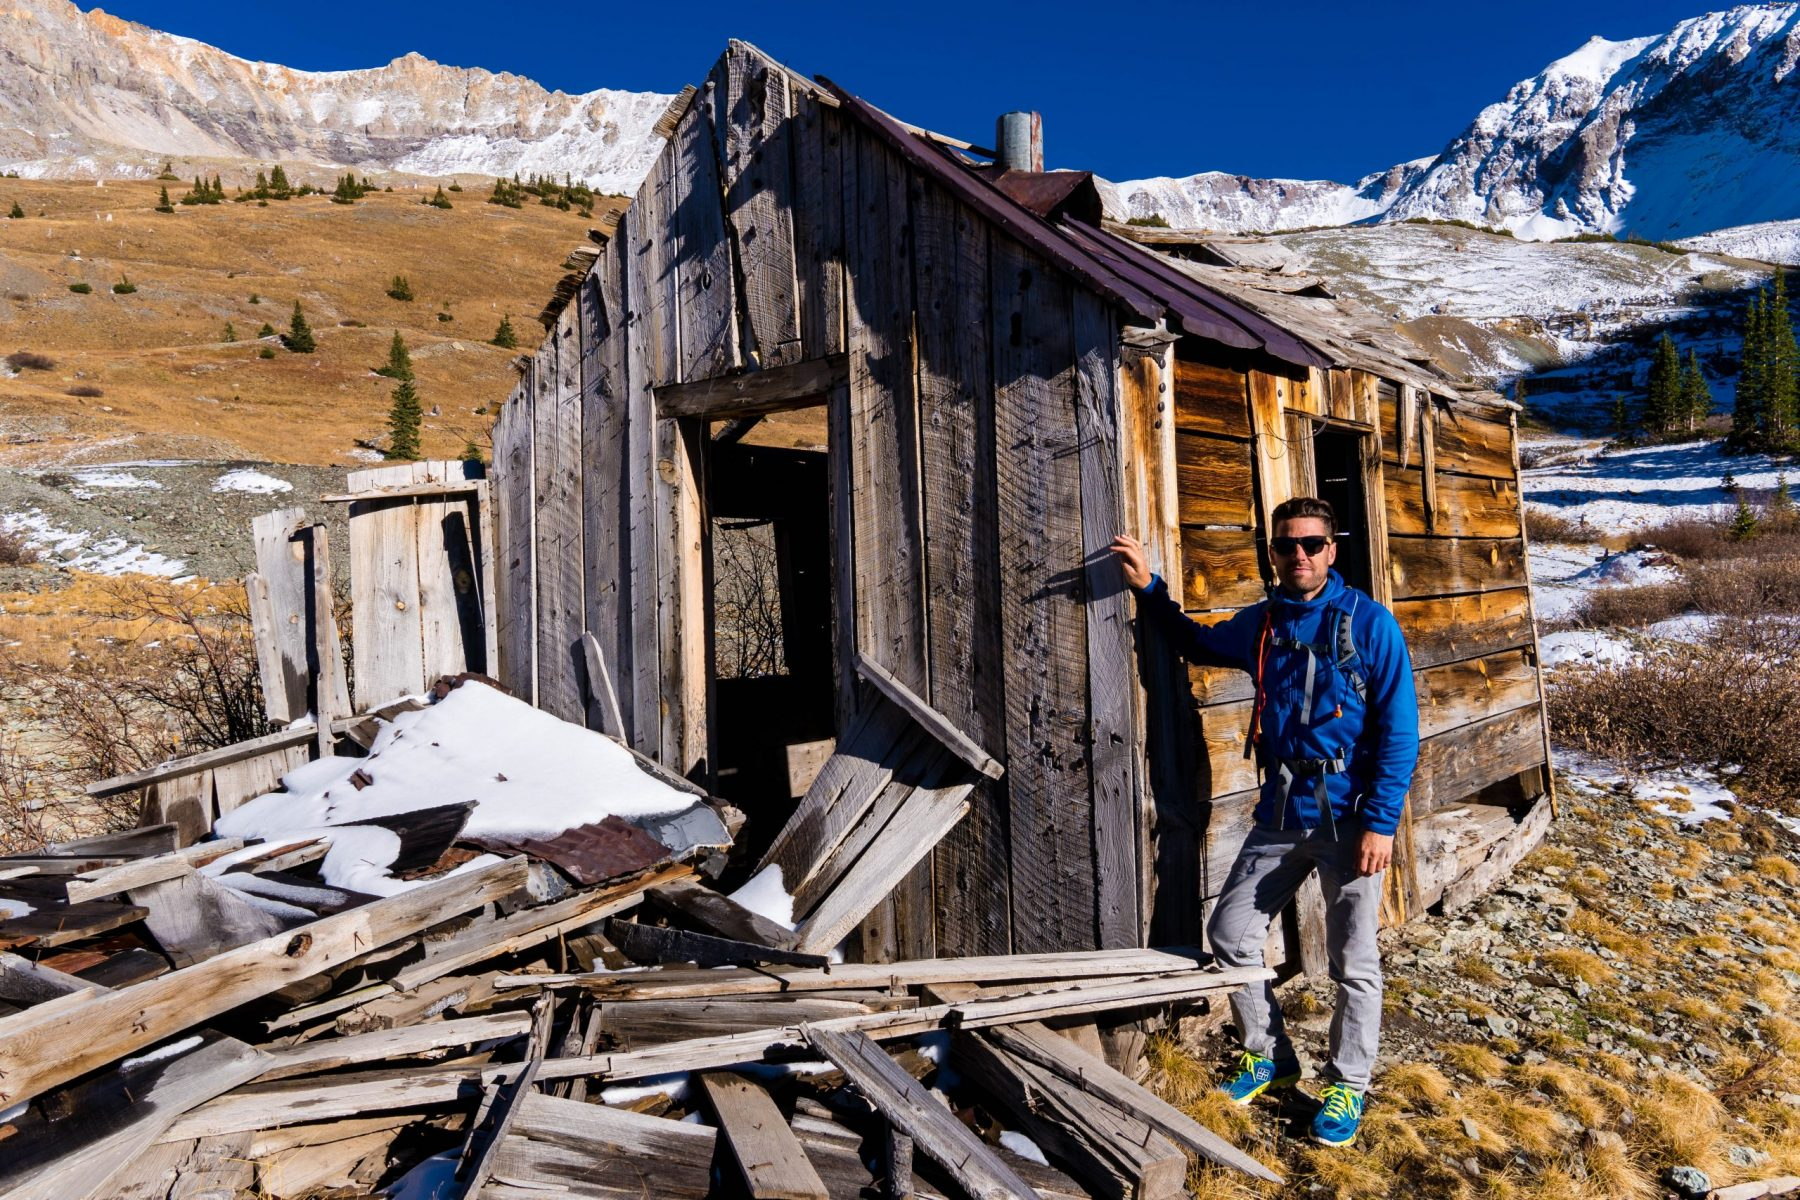 Off Roading Near Me >> The Tomboy Mine Ghost Town Near Telluride, Colorado - We ...